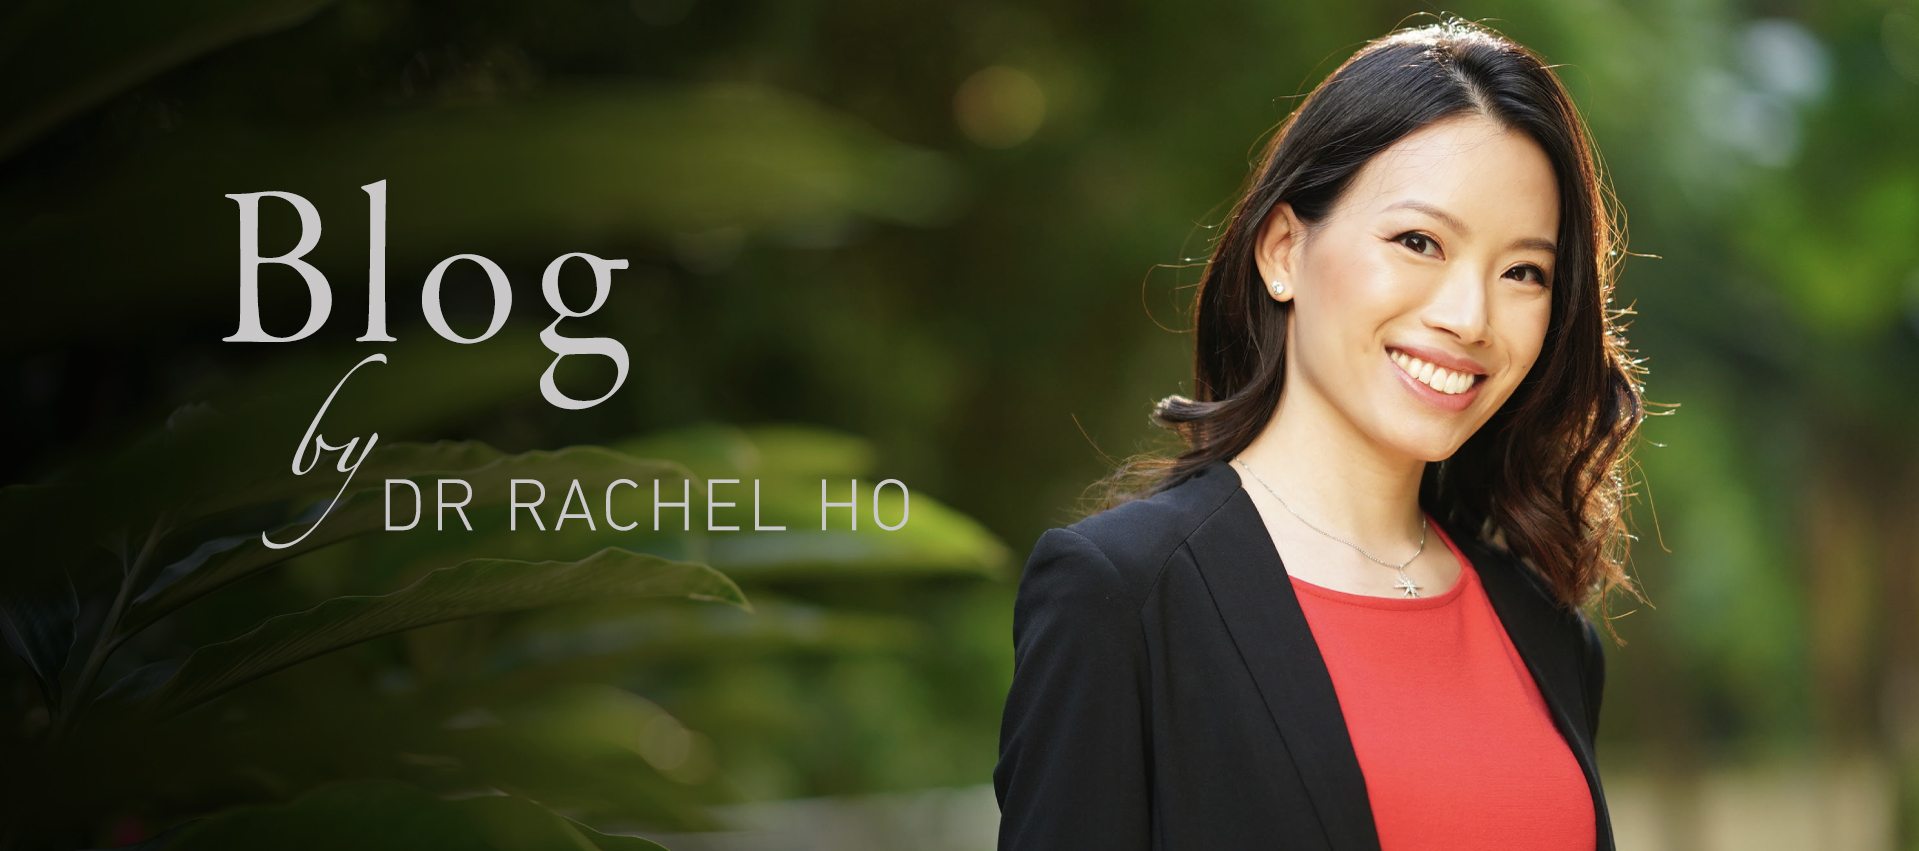 Dr Rachel Ho | V face & Jaw Slimming: All You Need to Know